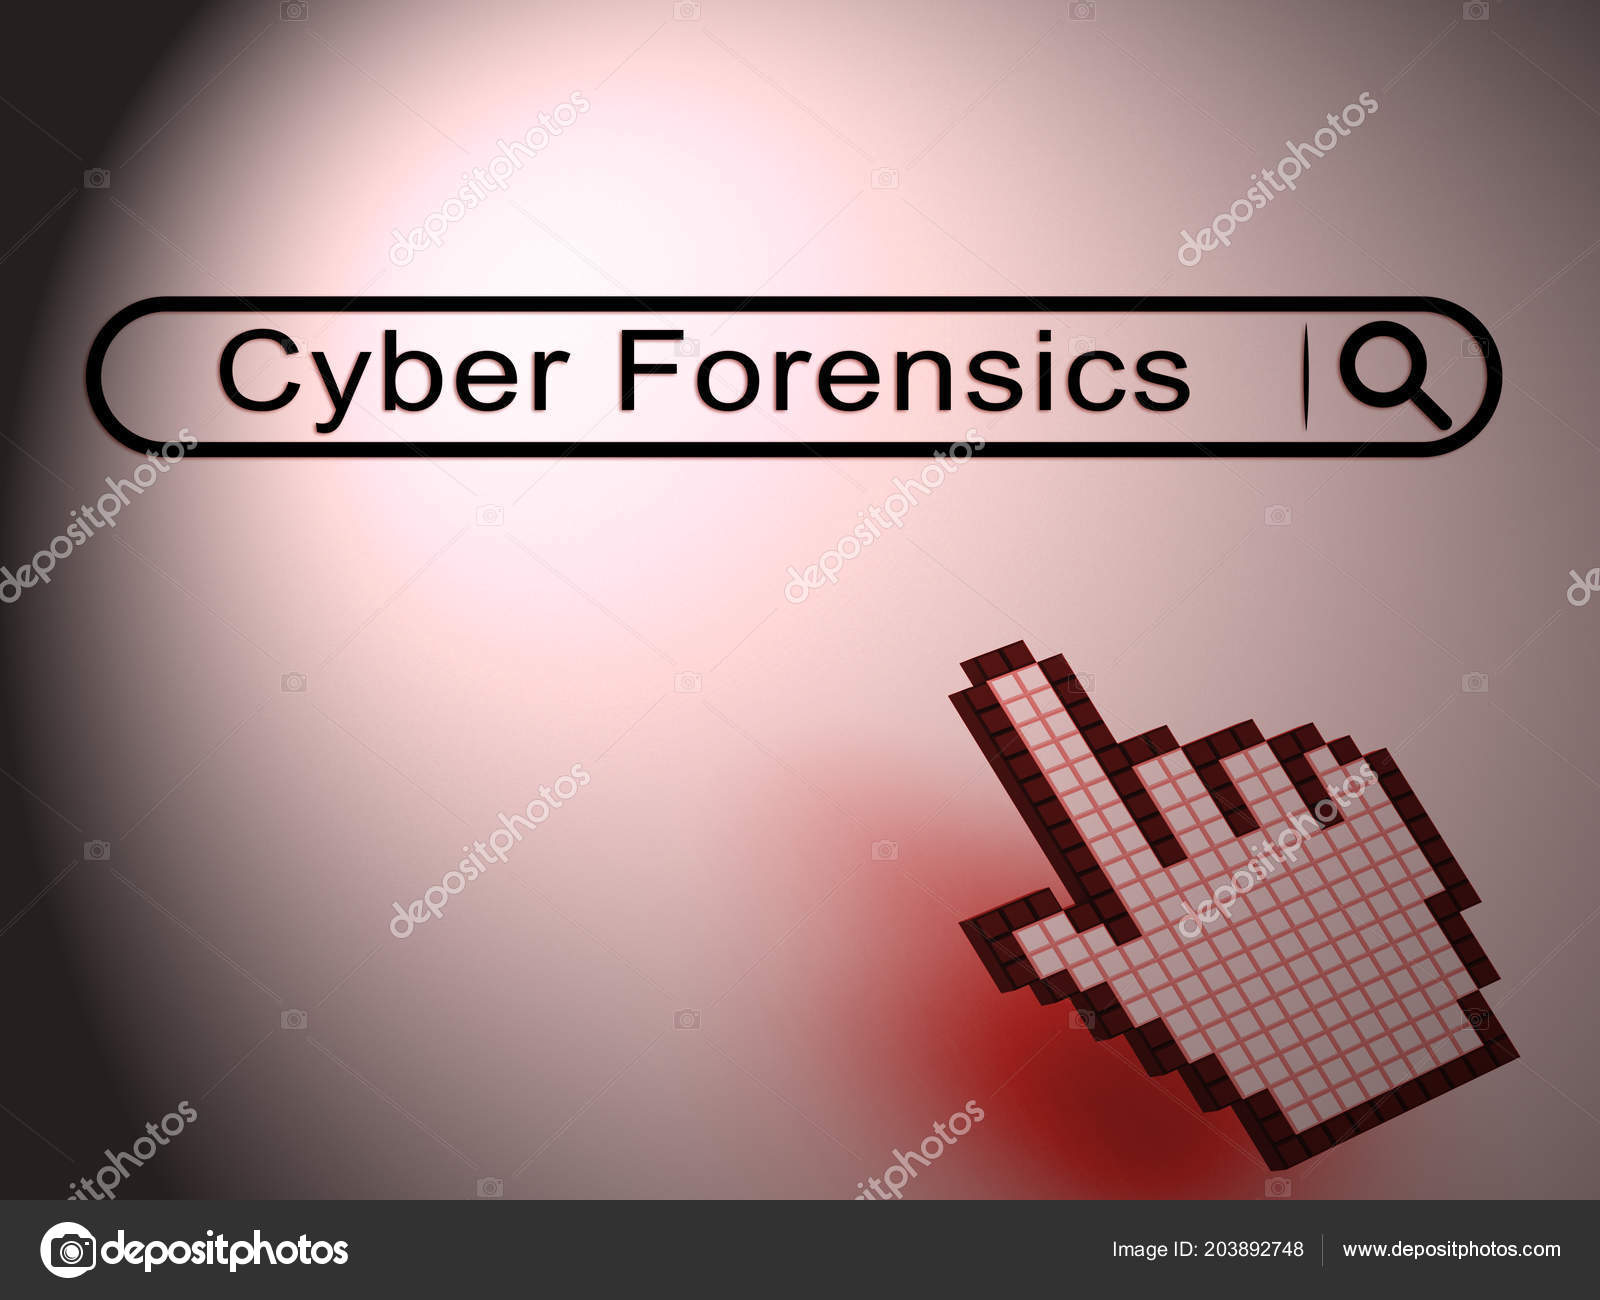 Cyber Forensics Computer Crime Analysis Illustration Shows